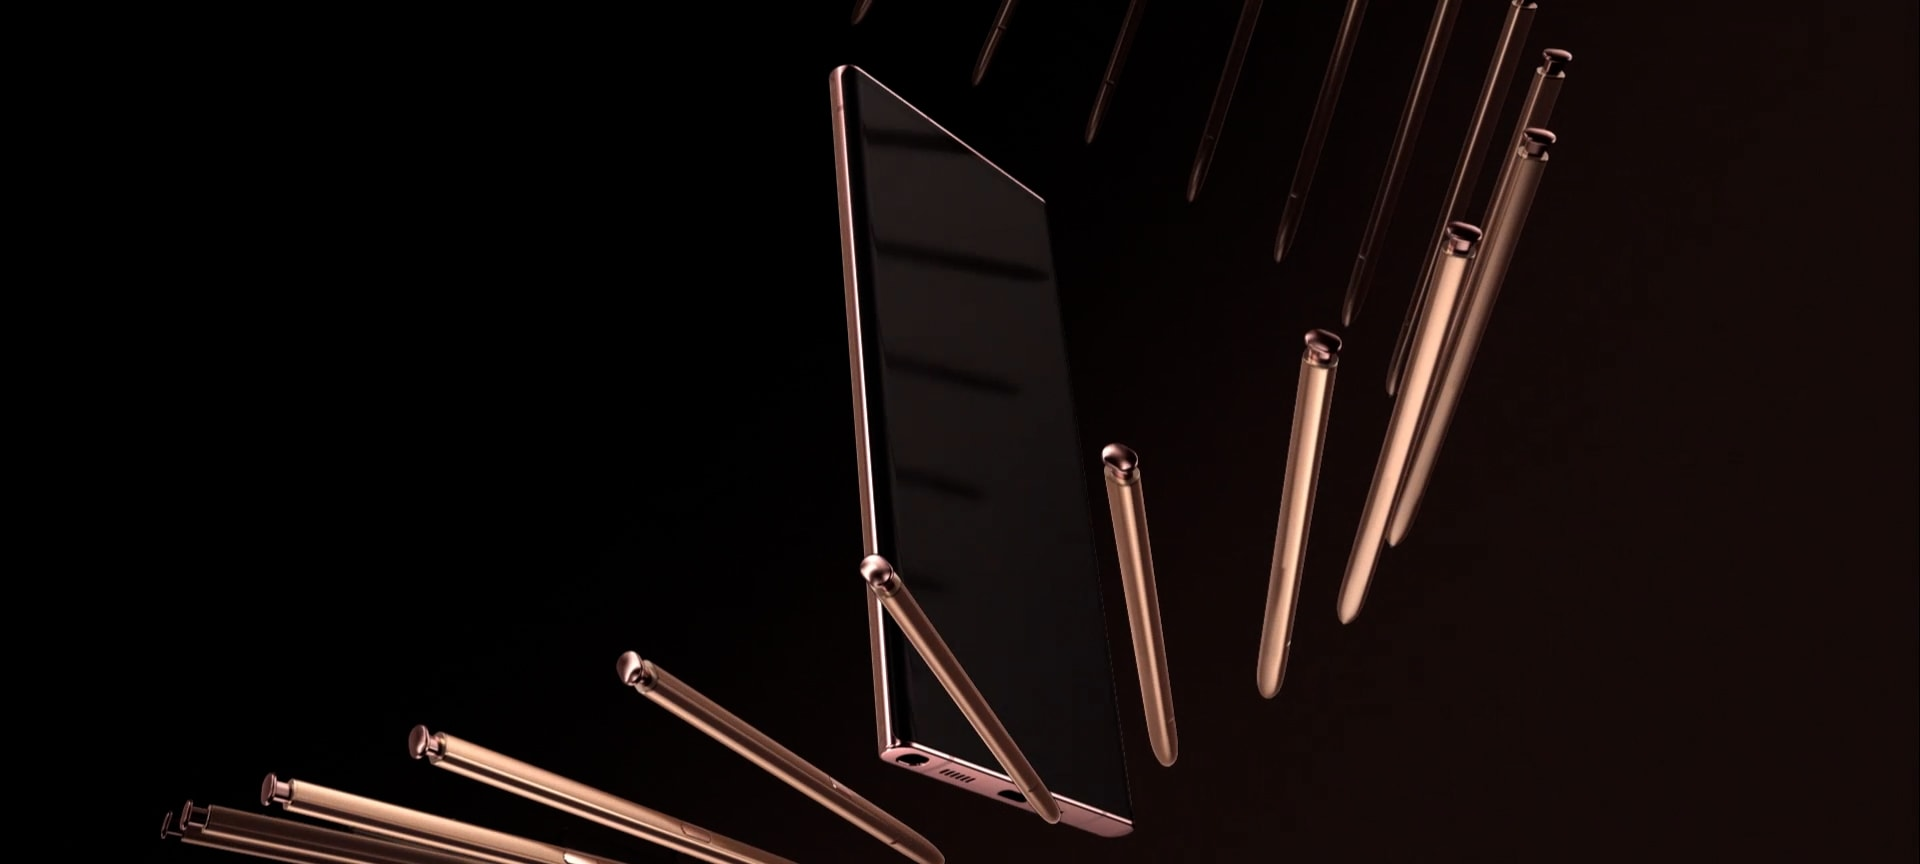 A close up of bronze S Pen drags across the screen of Galaxy Note20 Ultra, with a bronze trail following the pen tip. The display and pen turn until the phone is seen in full, with multiple S Pens moving around it.